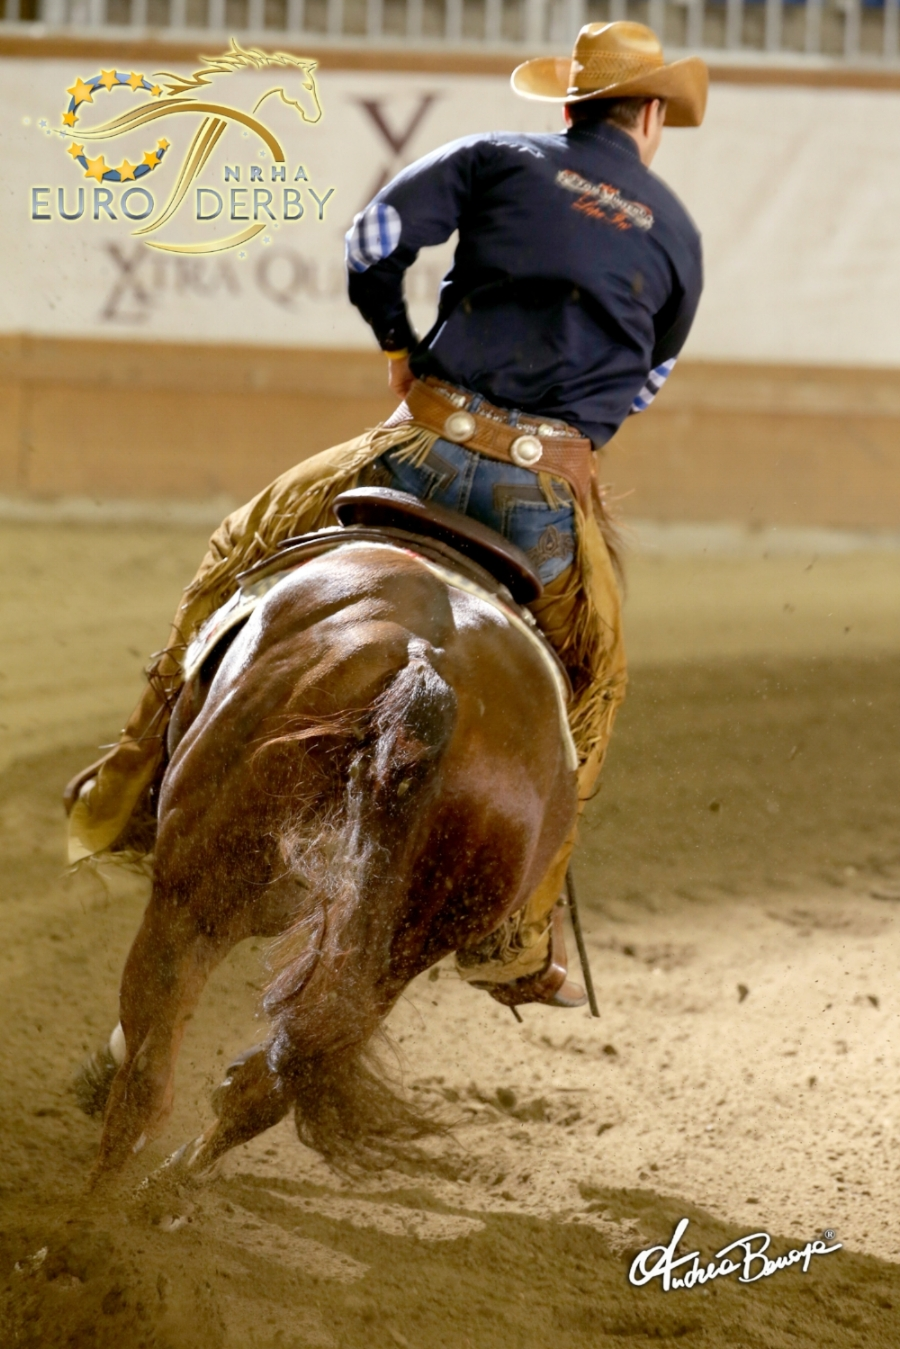 Custom del Cielo at the European Derby 2014 - lvl4 Open Reserve Champion